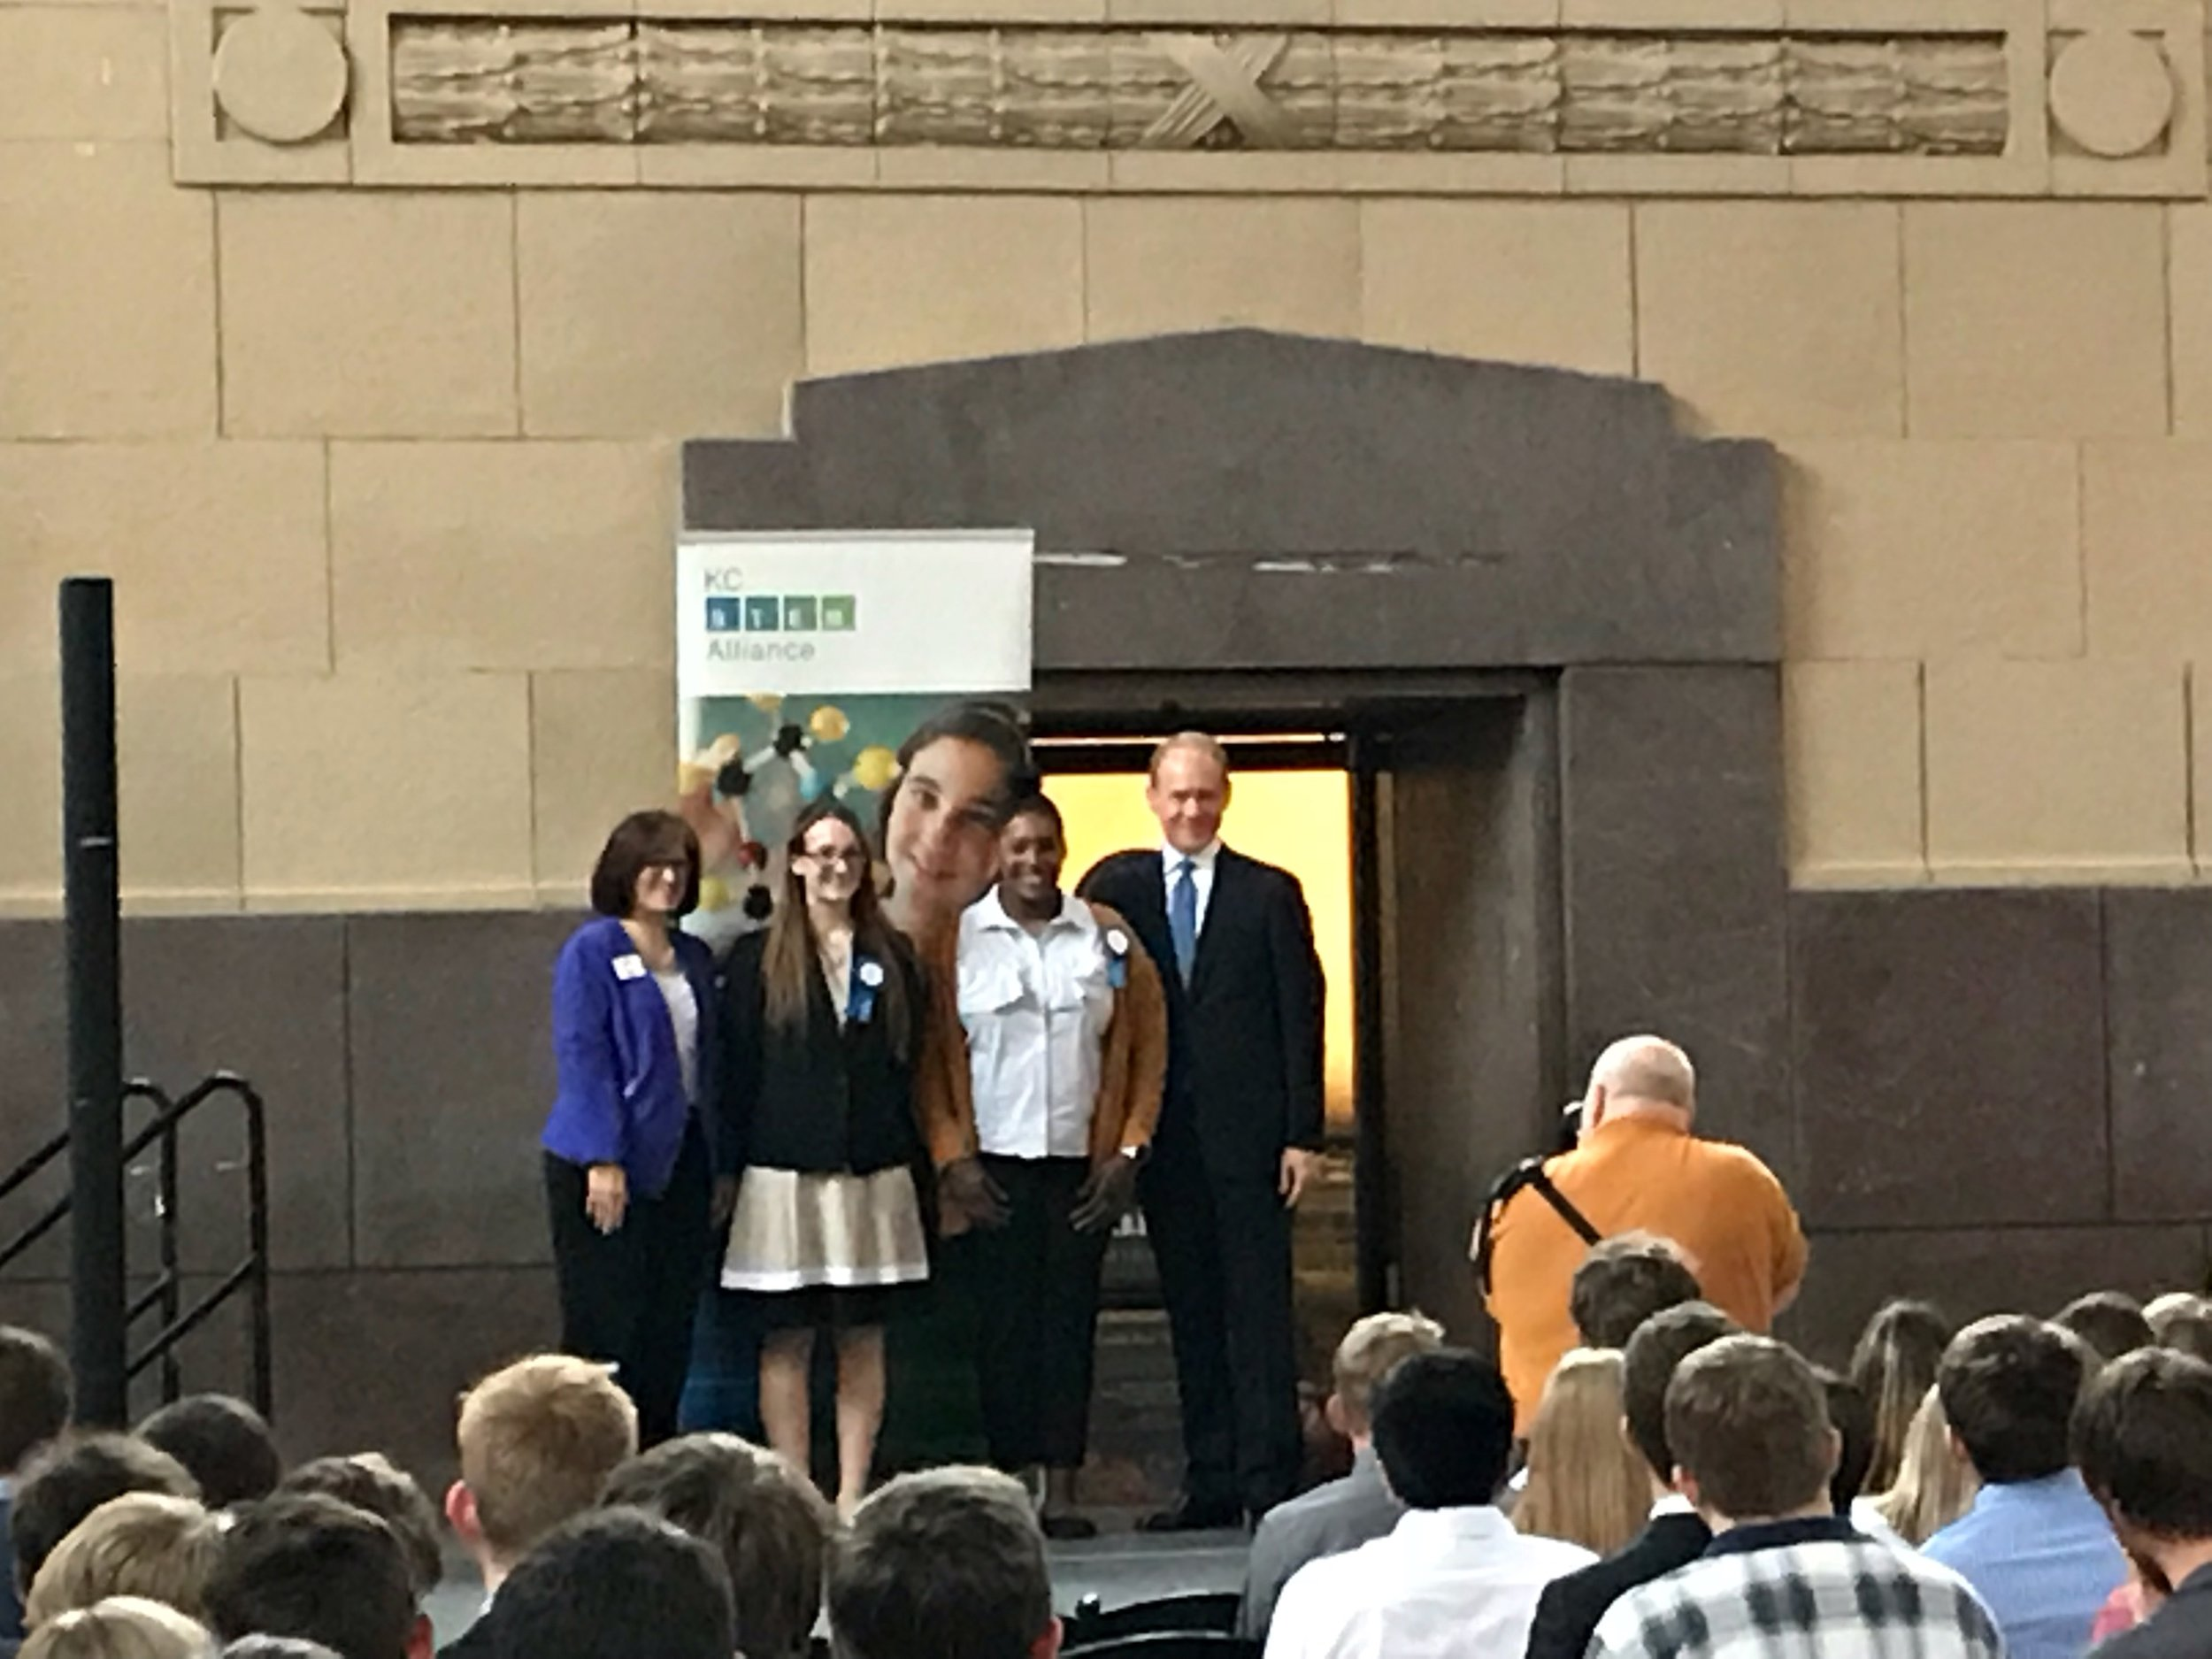 First-place winners in the biomedical category, research title: Cell Phone Emissions Effect on the Growth and Development of C. Elegans, are (from left) Martha McCabe, KCSTEM Alliance executive director; Mikayla Odell; Jayci Goodwin; and Vince Bertram, Project Lead The Way CEO.